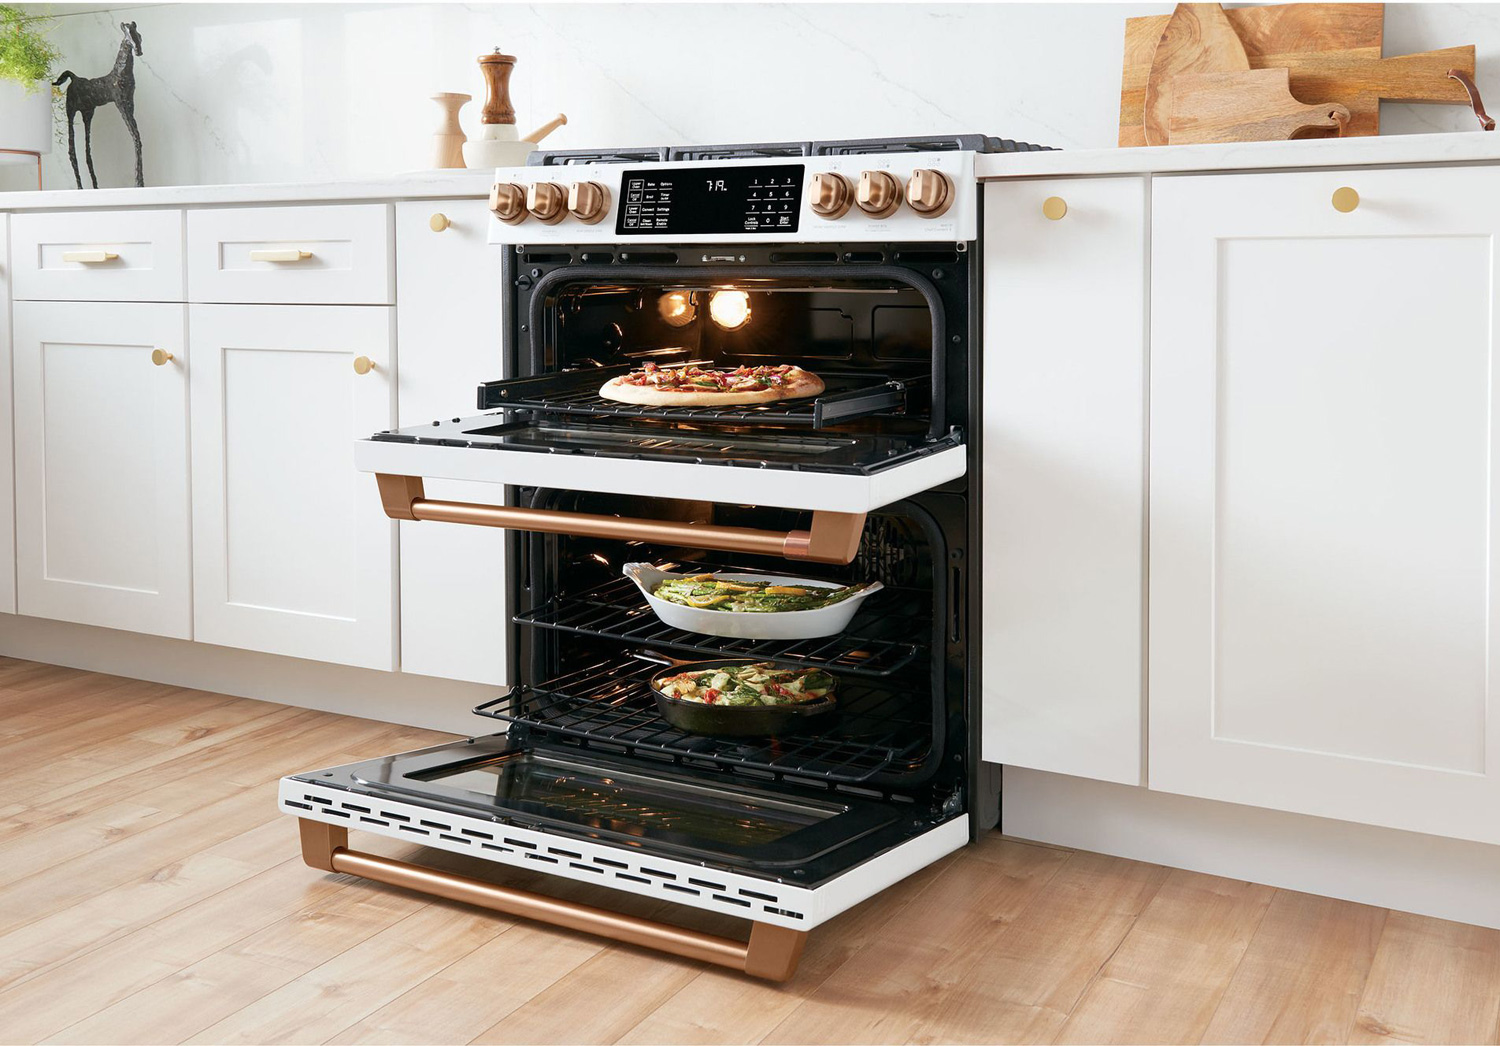 7 Best Ranges of 2019 - Top Stoves Reviewed